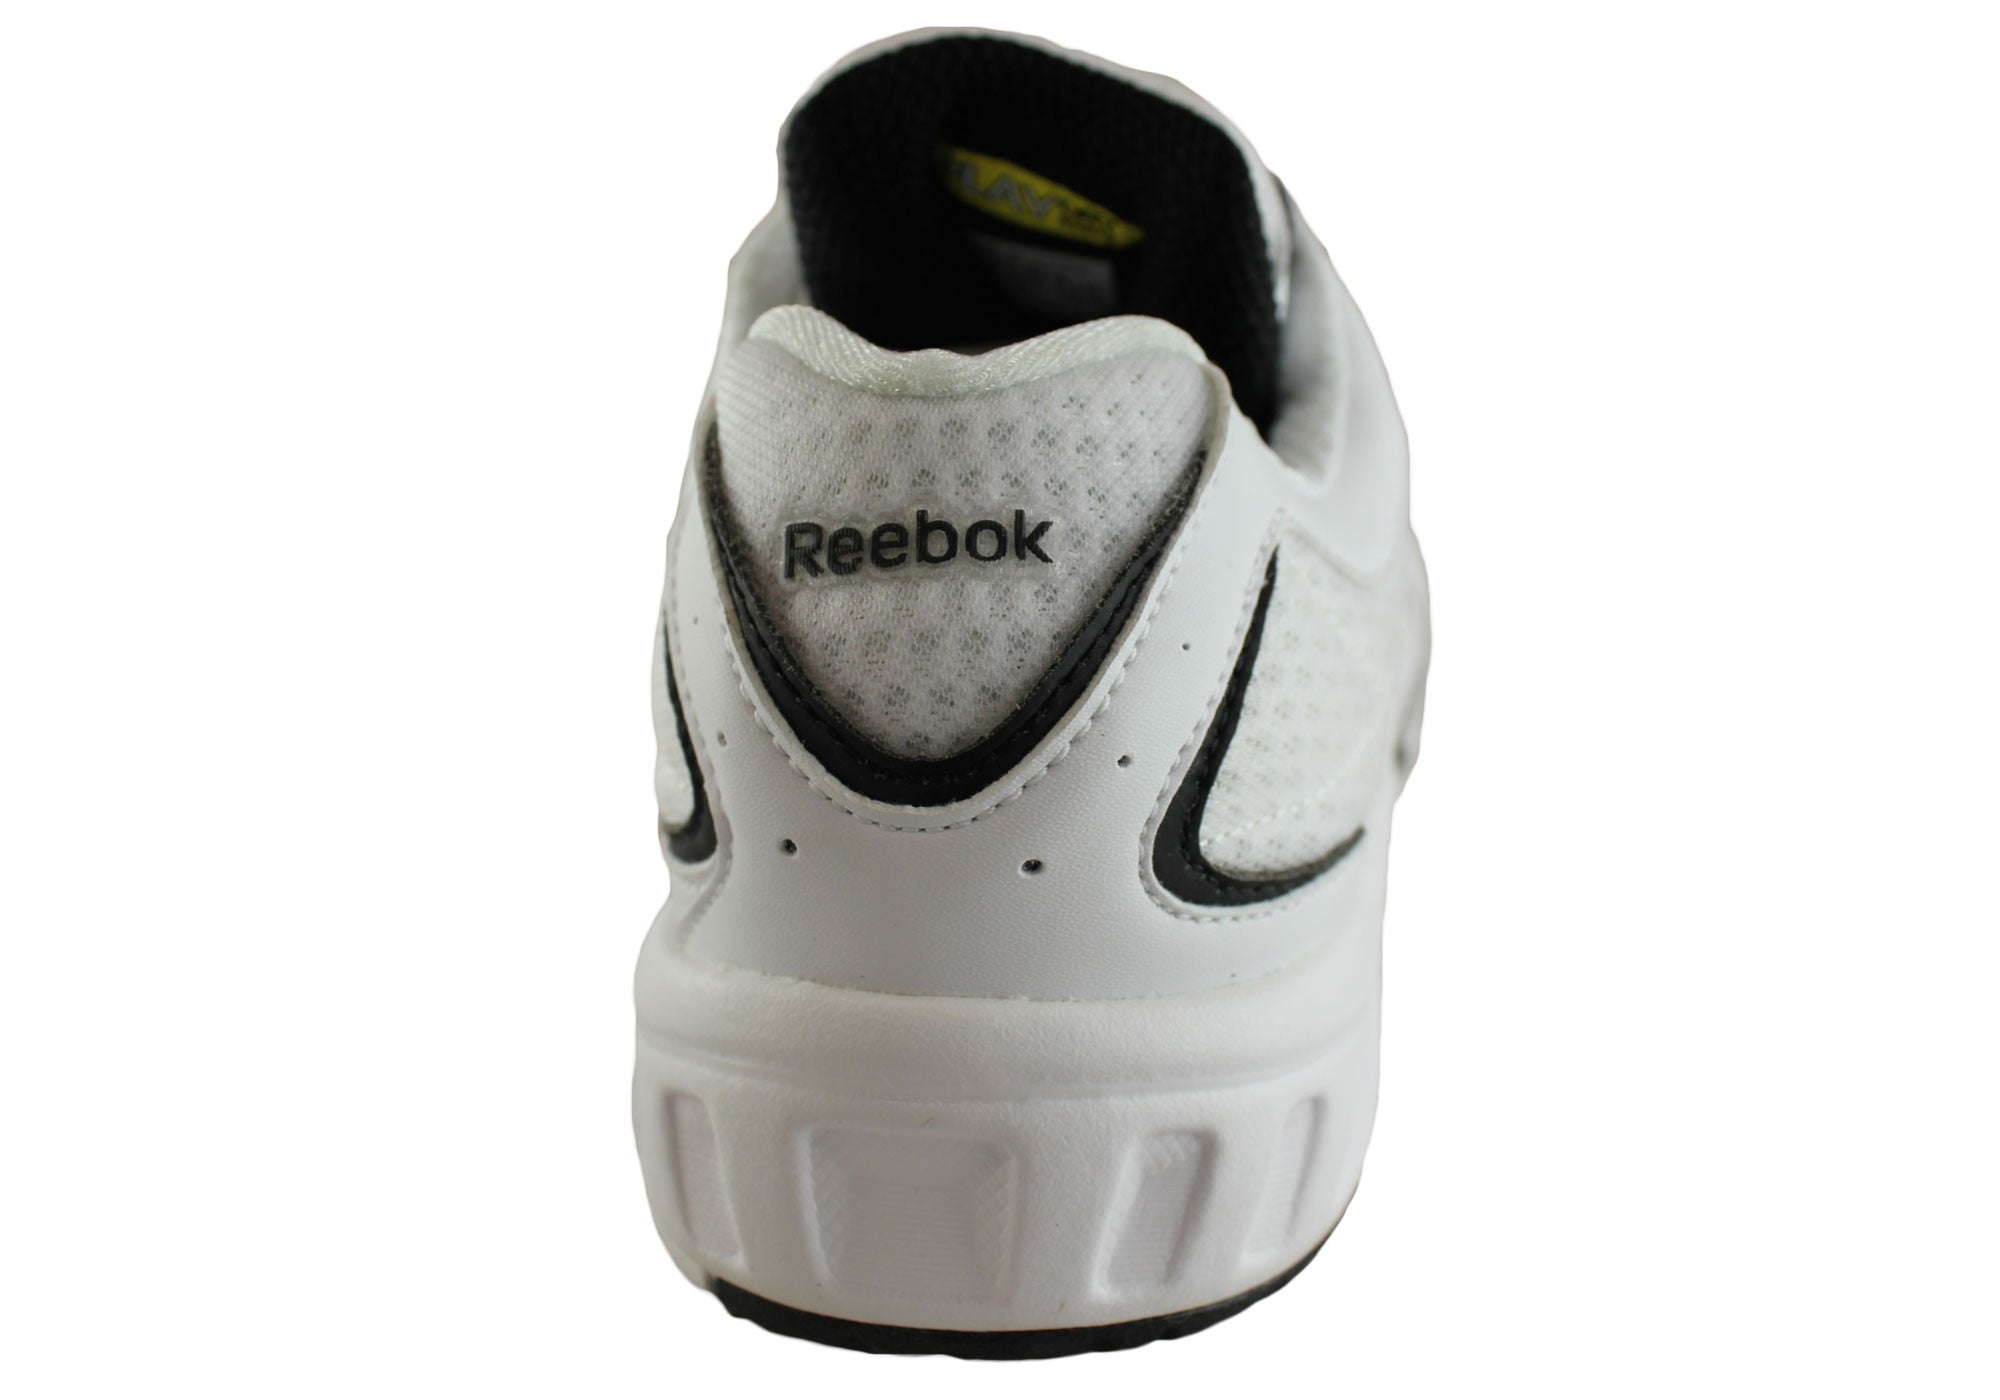 Reebok KFS Pump Advantage Mens Lace Up Tennis Shoes